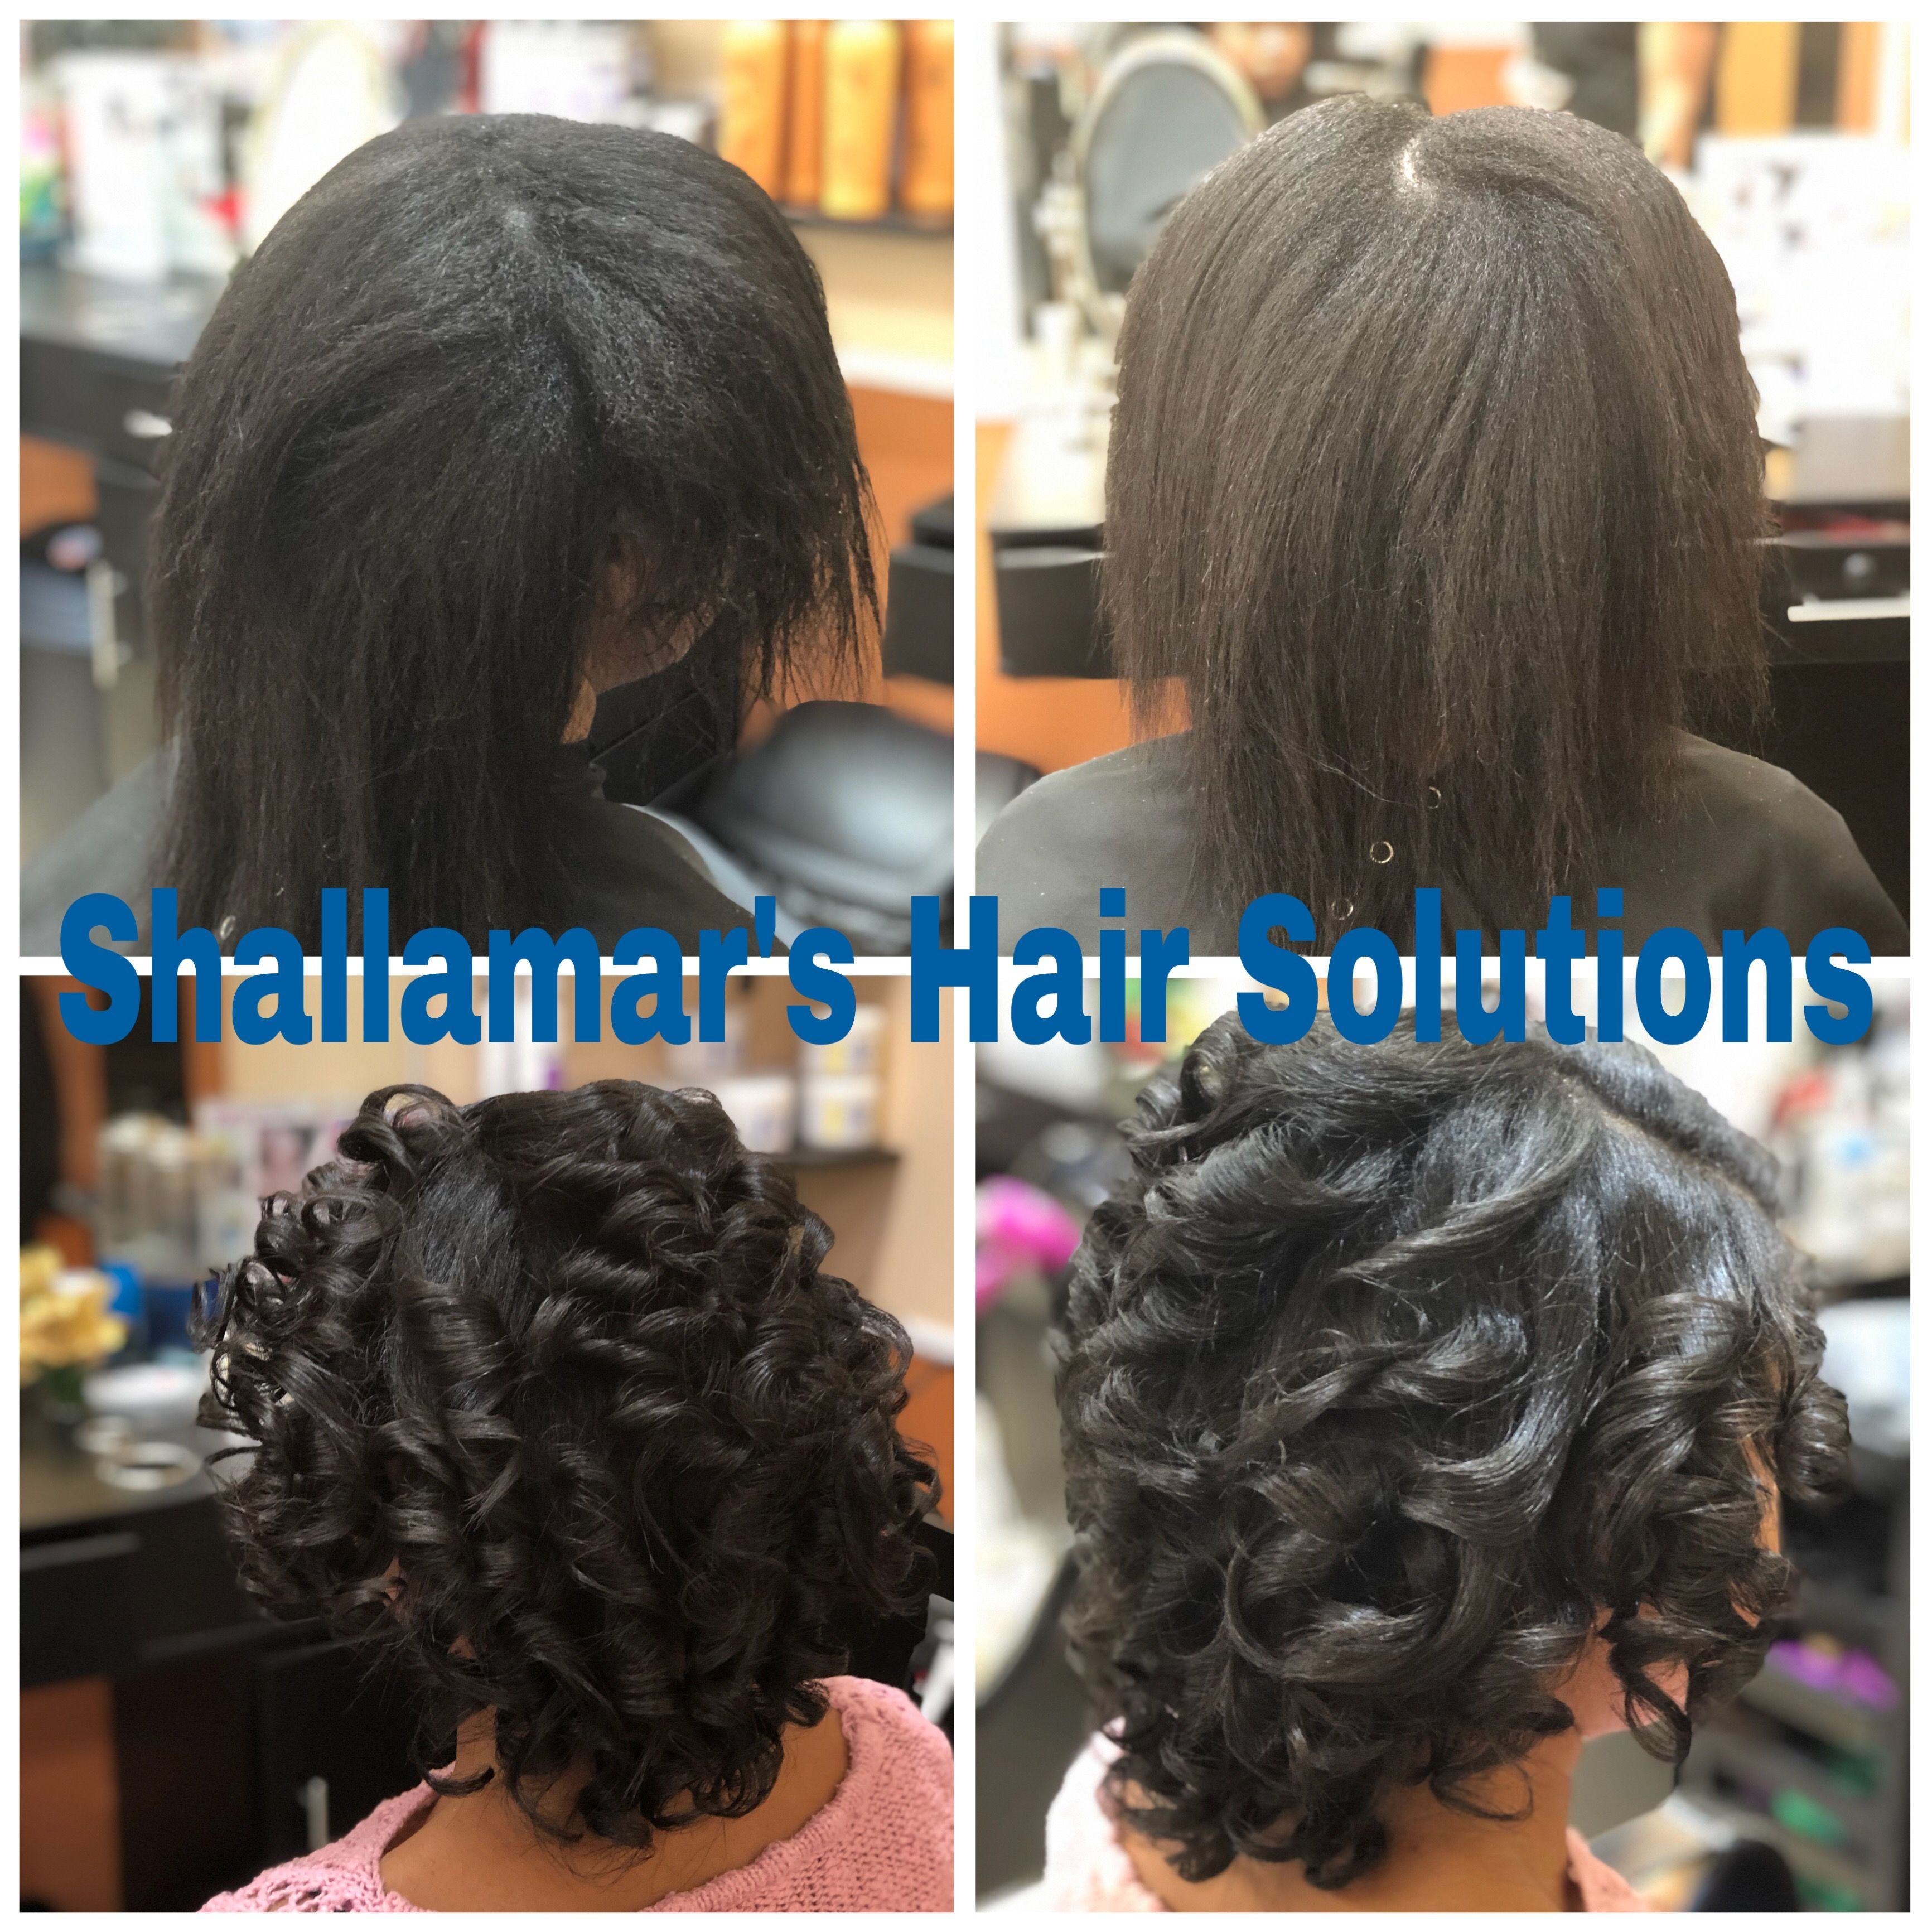 Pin By Shallamar S Hair Solutions On Orlando Hair Salon Hair